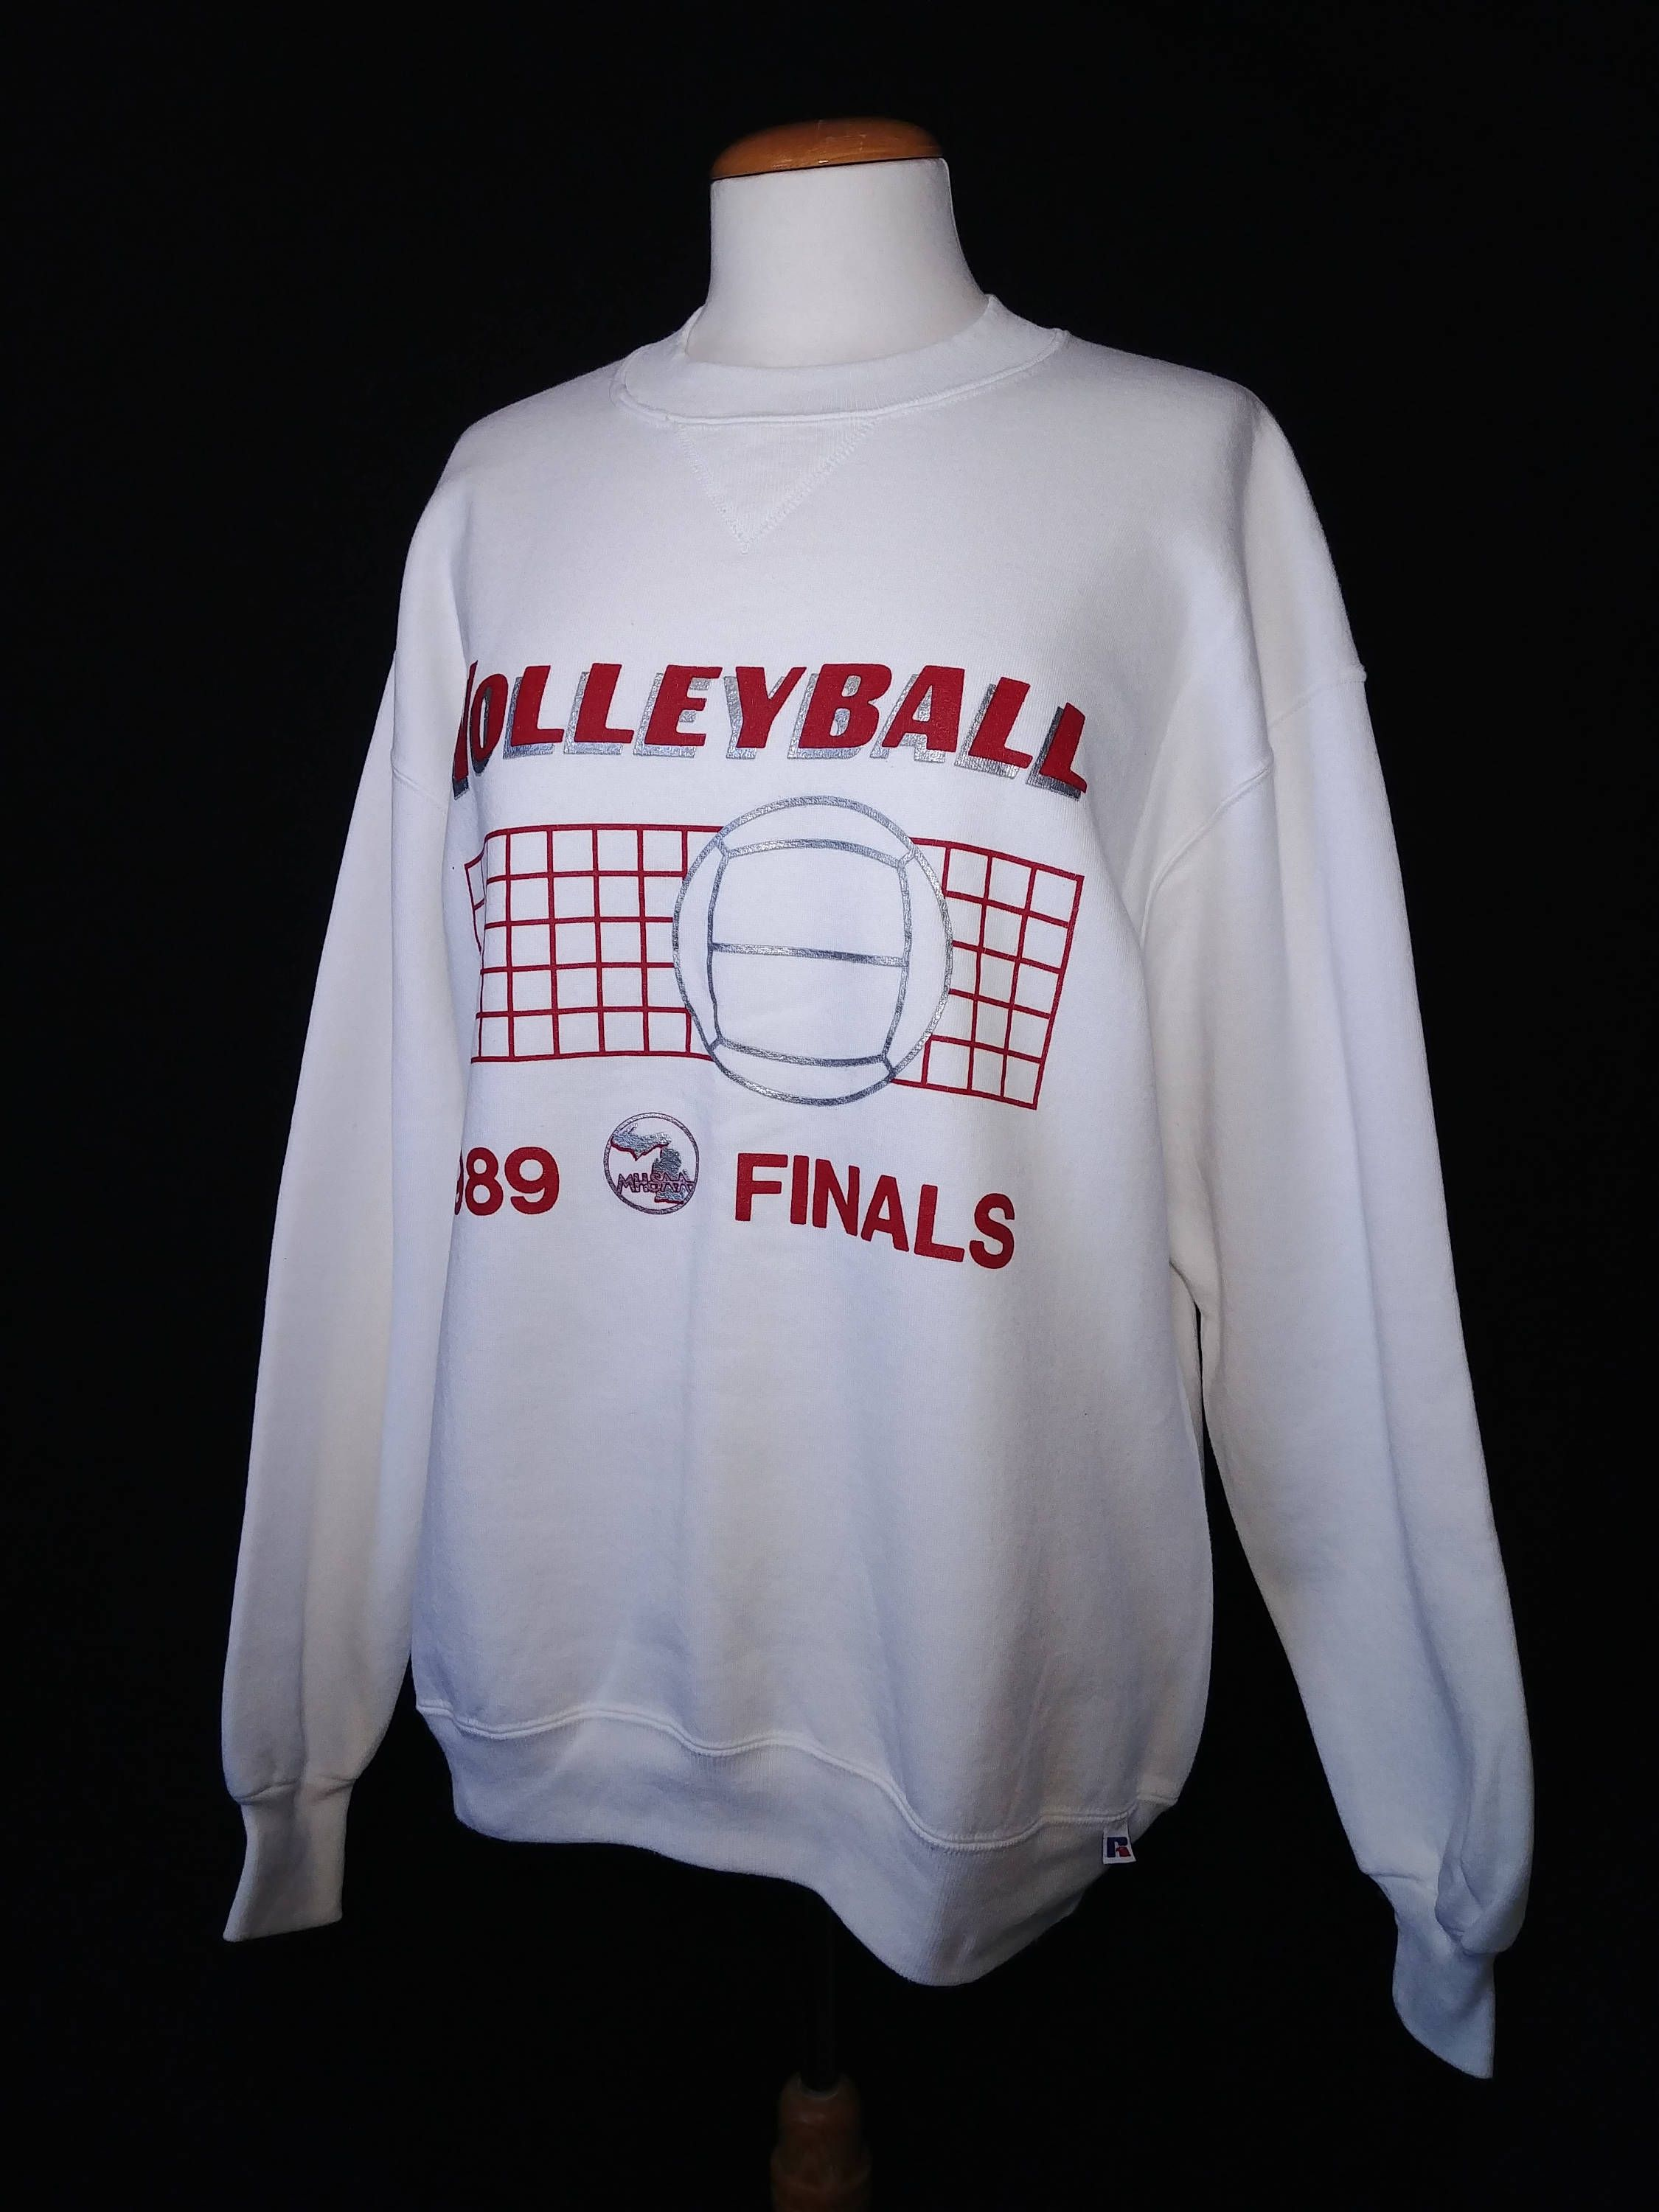 Vintage 80s Volleyball Finals Sweatshirt Manitoba High School Athletic Association Retro 1989 Russell Athletics Volleyball Sweatshirt Volleyball Sweatshirts Sweatshirts Volleyball